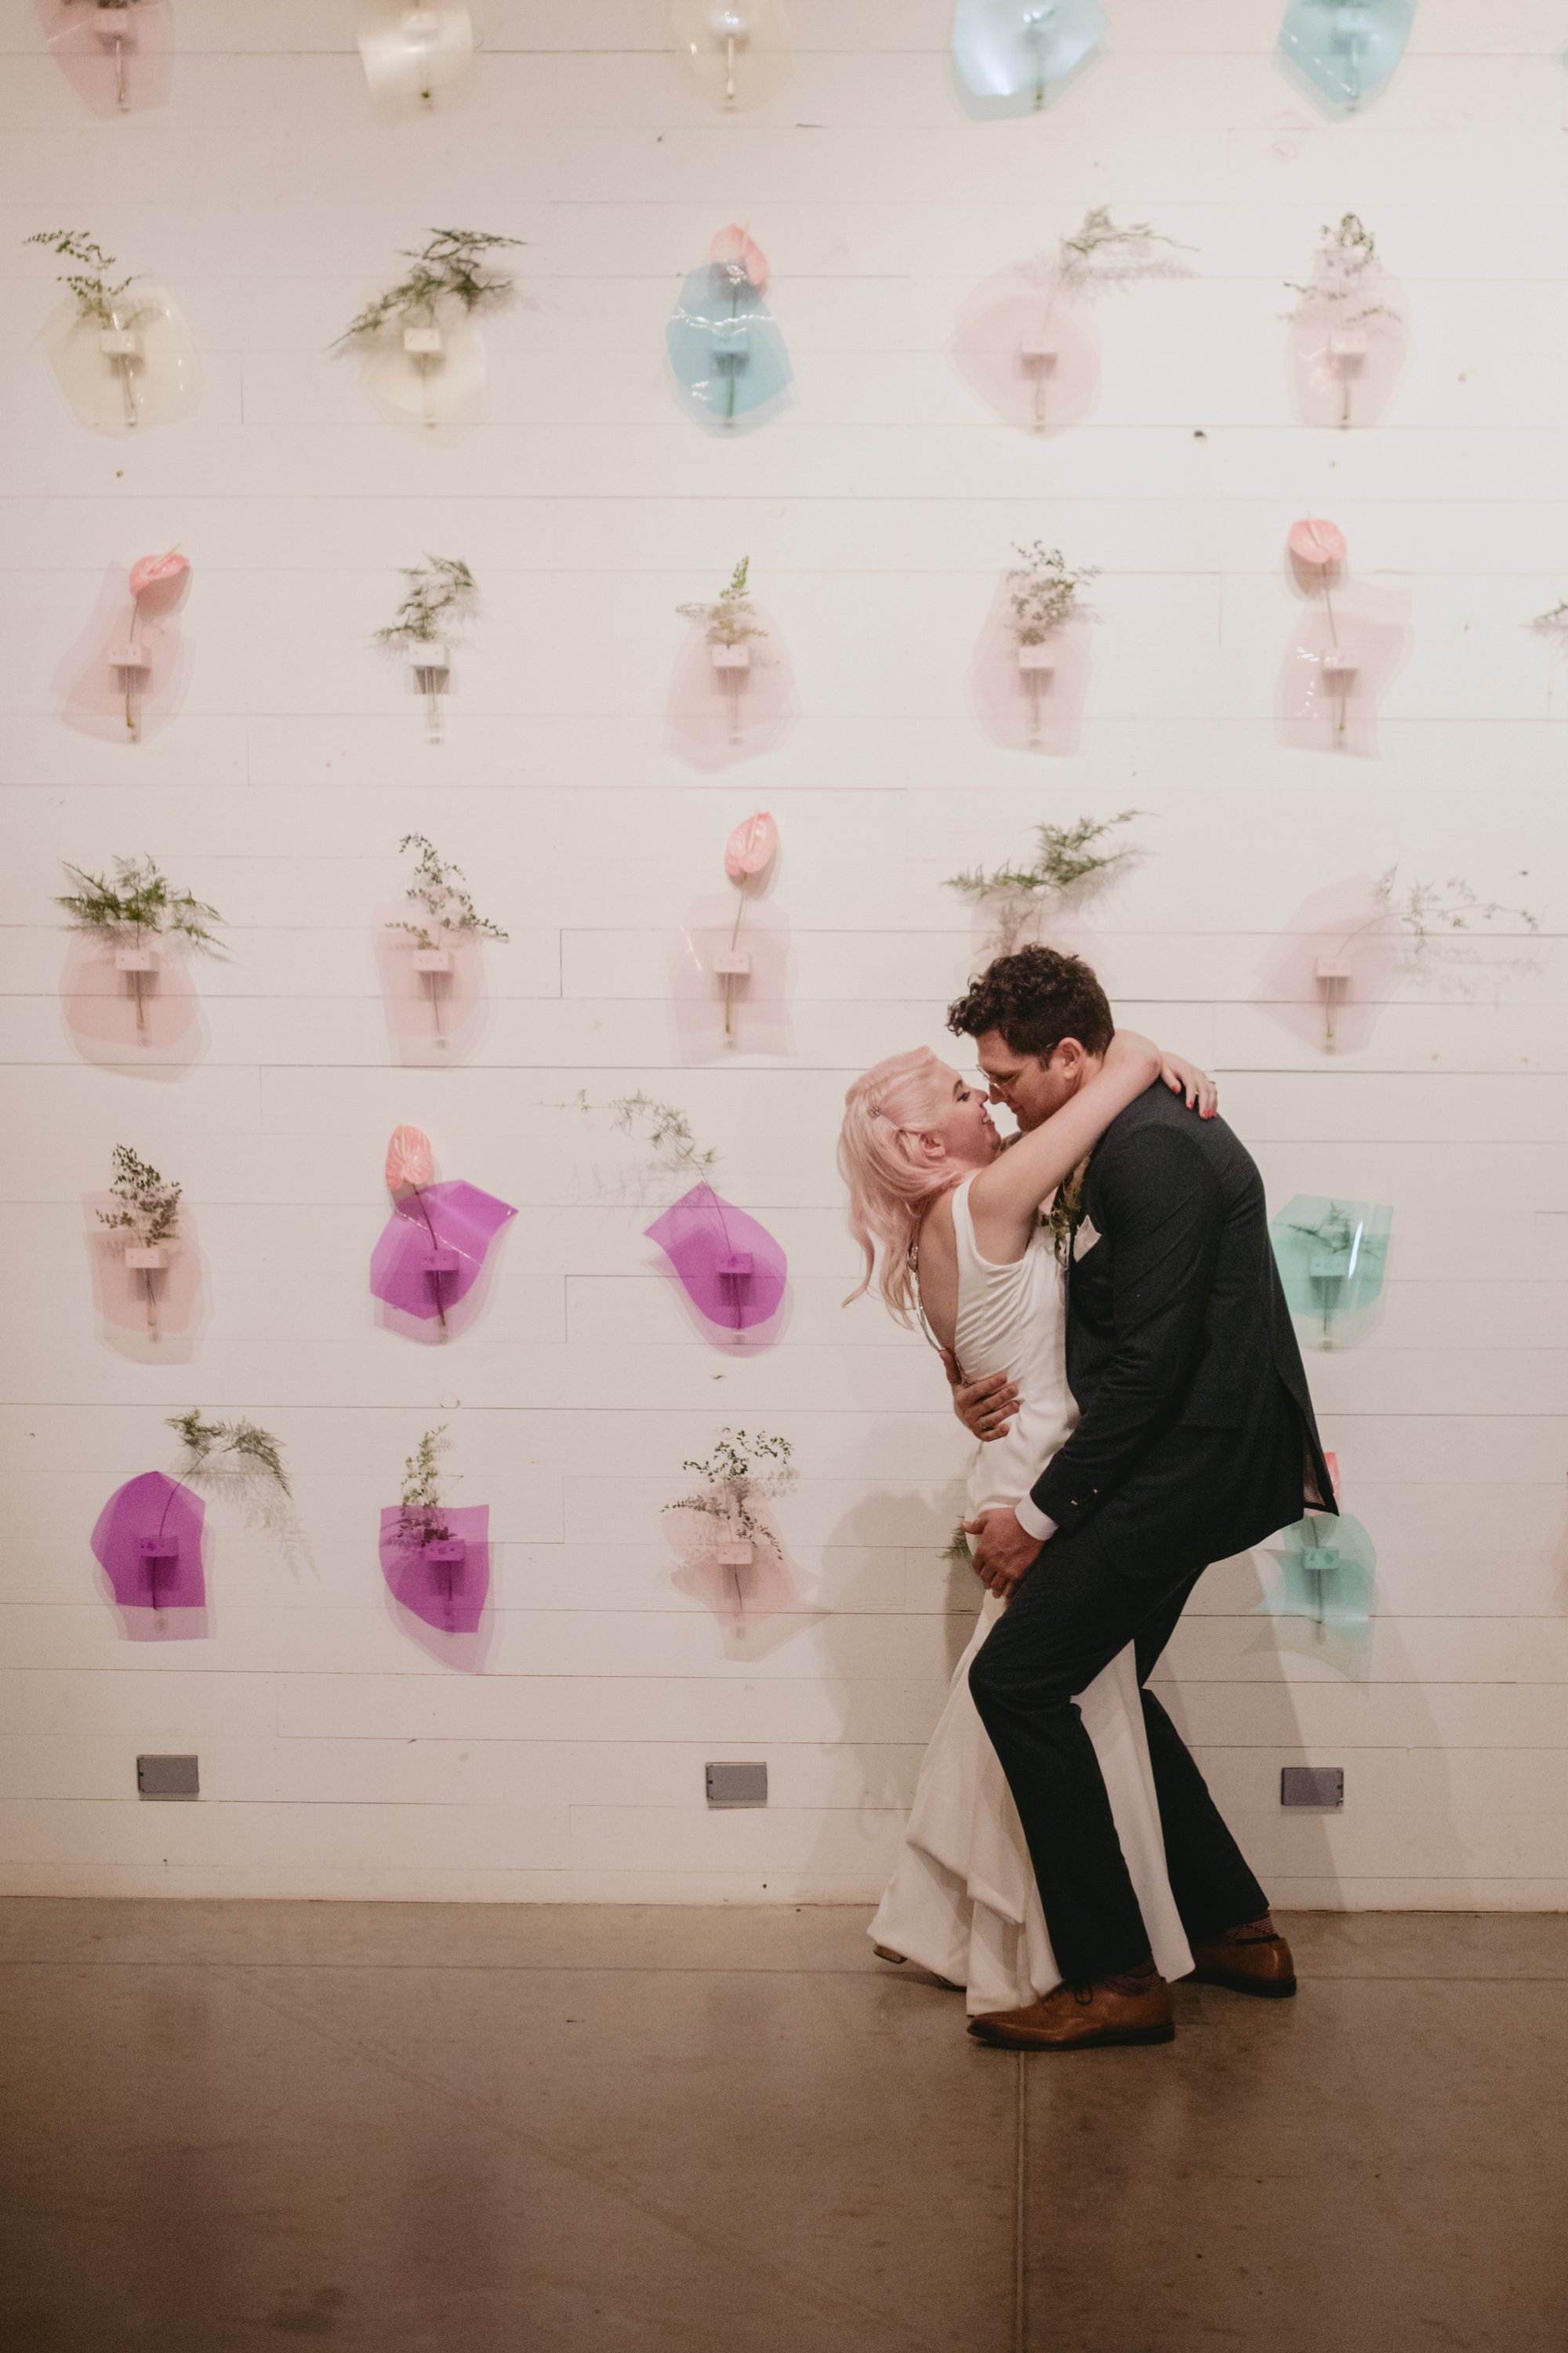 Bride with pink hair and groom in a purple suit prospect house wedding in austin tx with pastel decor and wild florals flower wall kiss